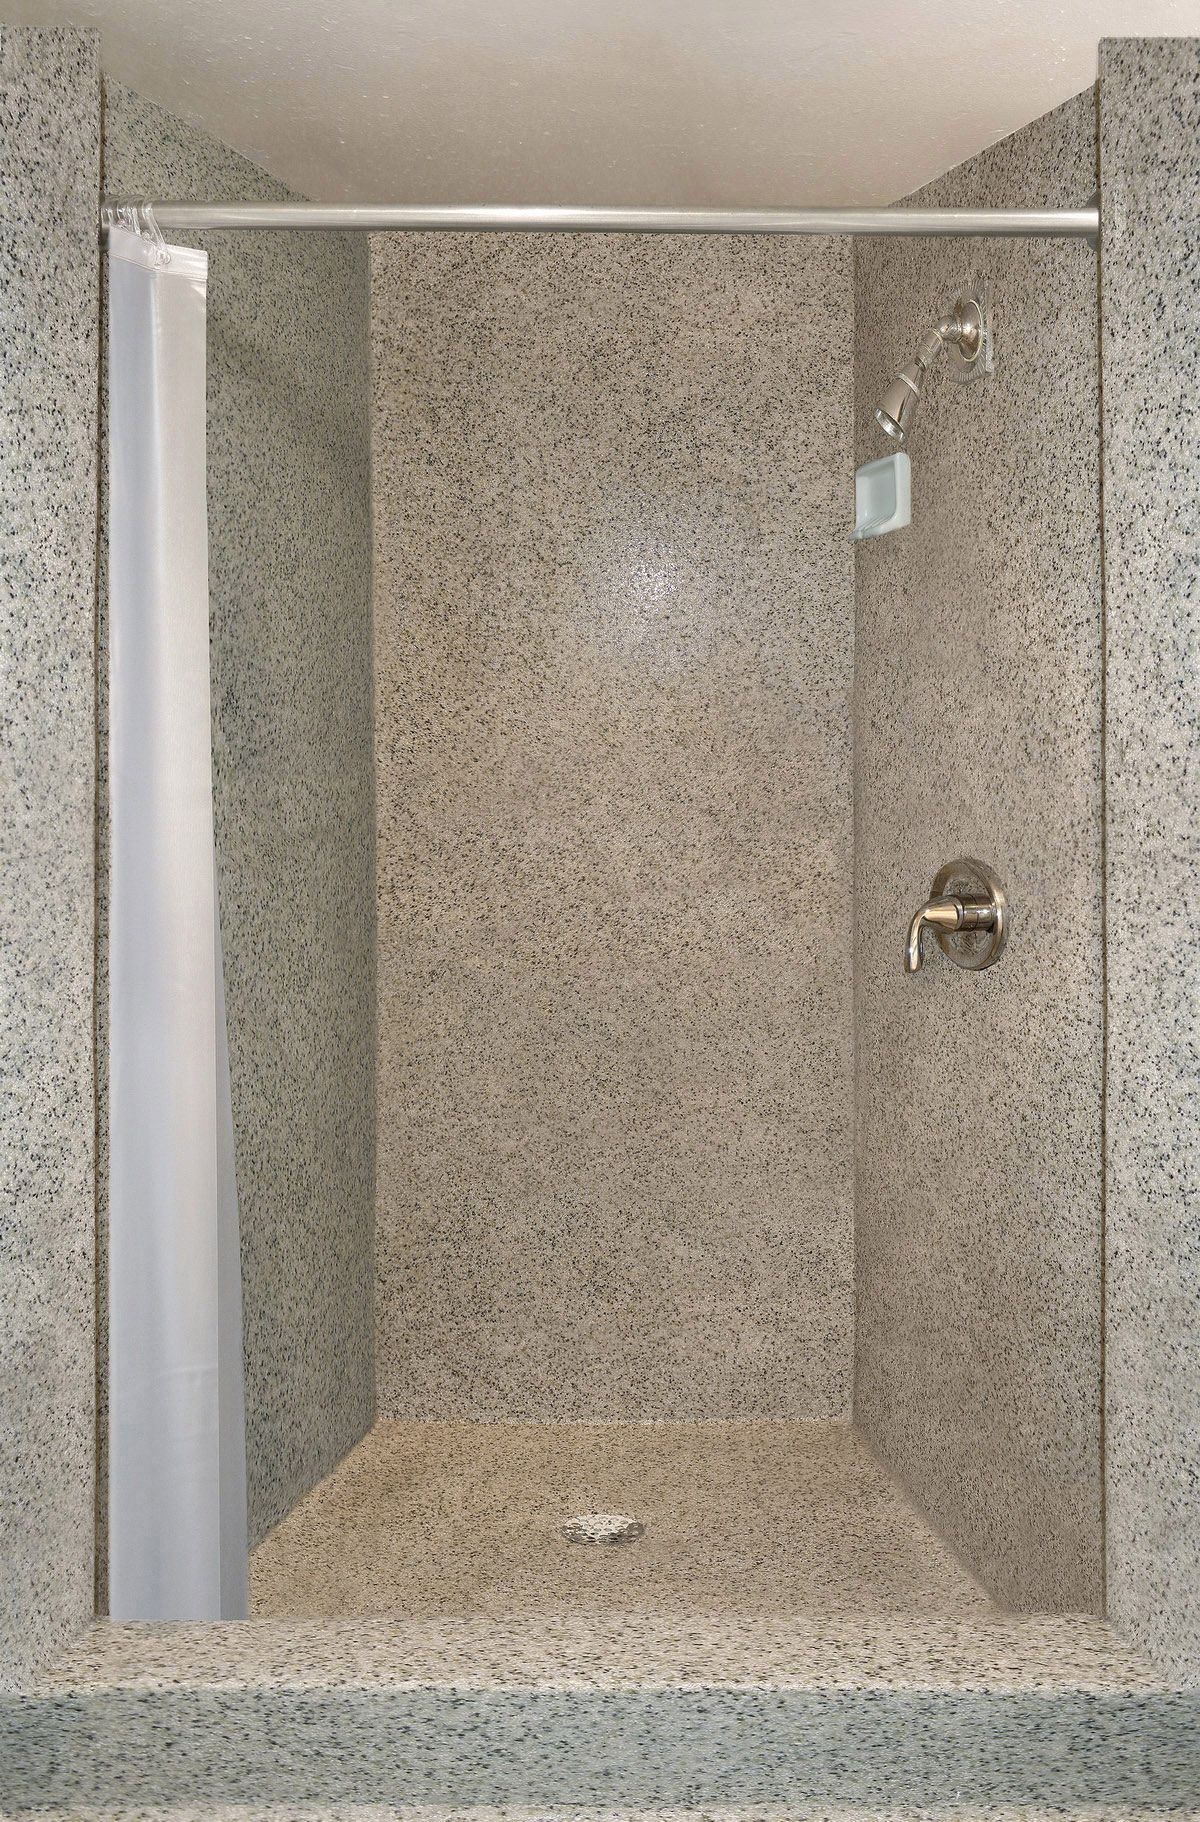 Antimicrobial Shower Floors Walls For Public Wet Spaces Shower Floor Epoxy Floor Bathroom Shower Walls